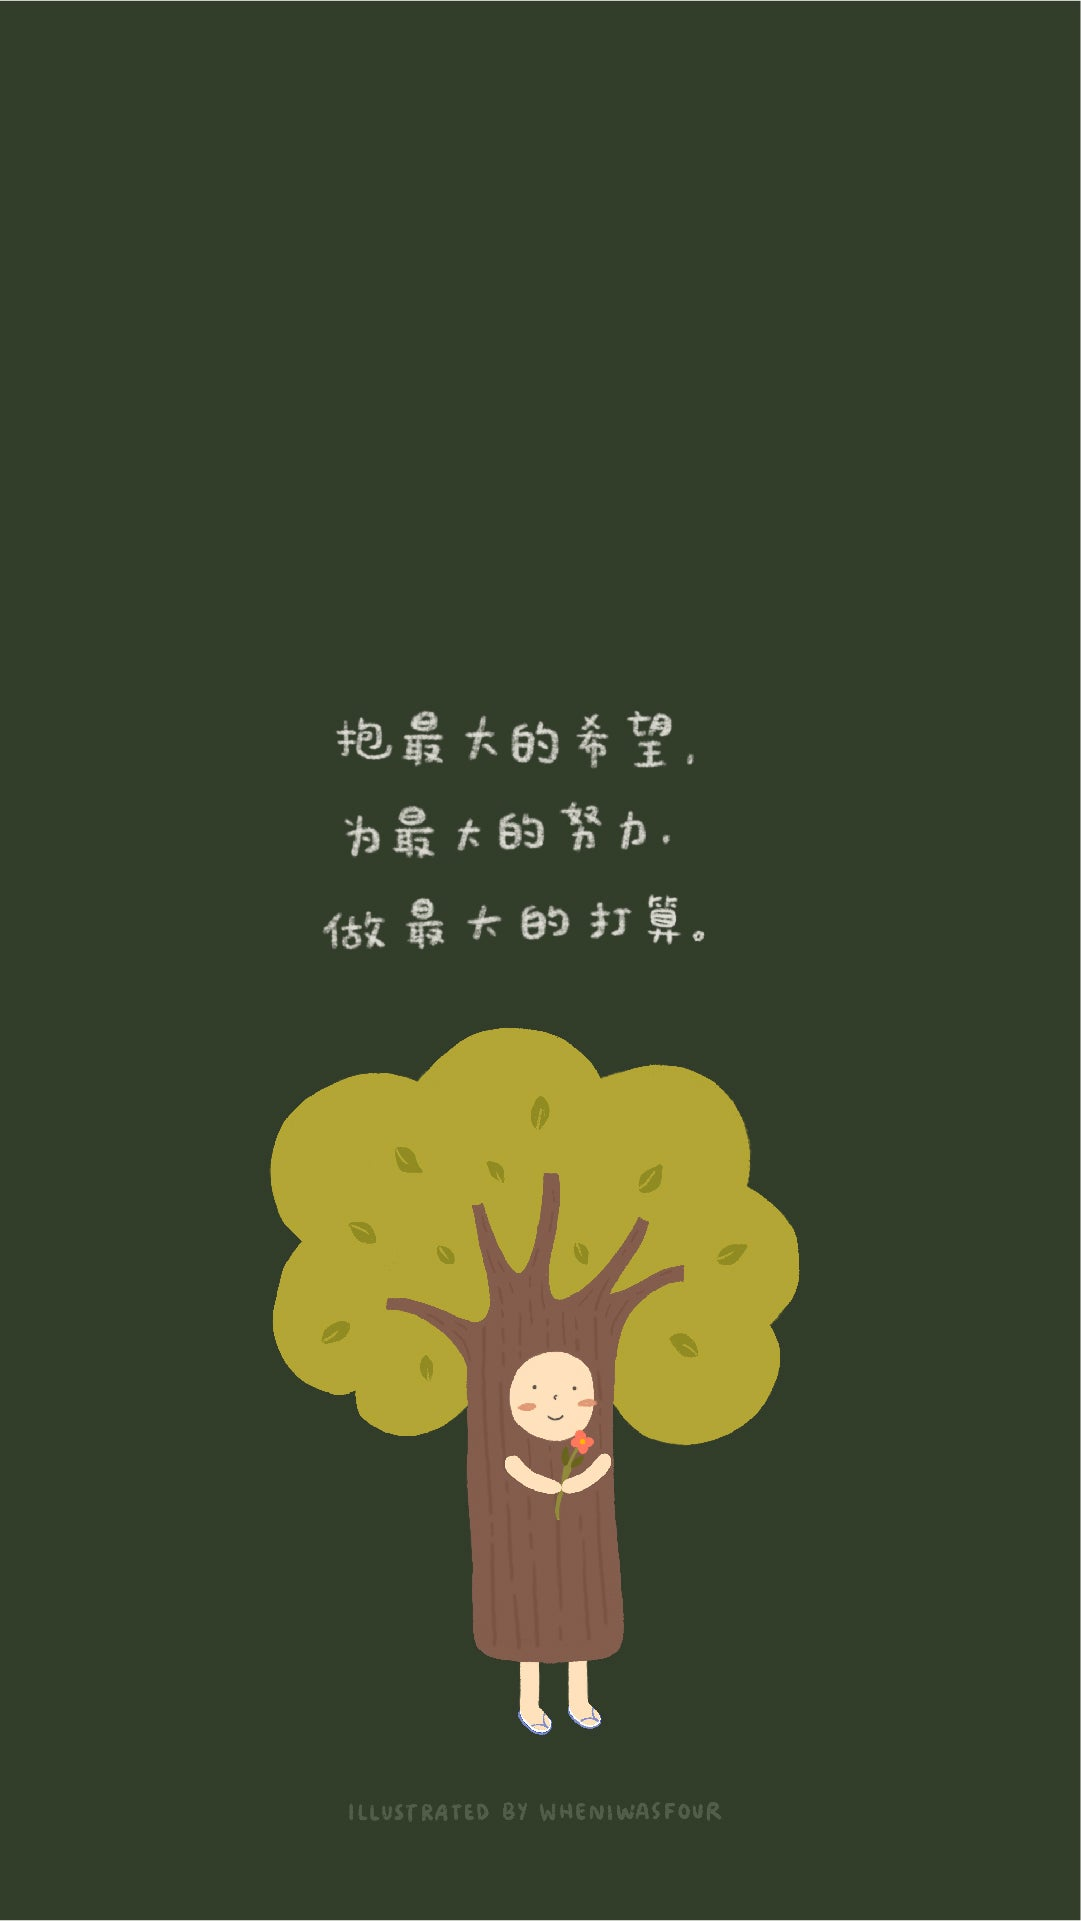 phone wallpaper of a digital illustration of a person wearing a tree costume holding a flower with a chinese verse talking about having hope and doing the best you can